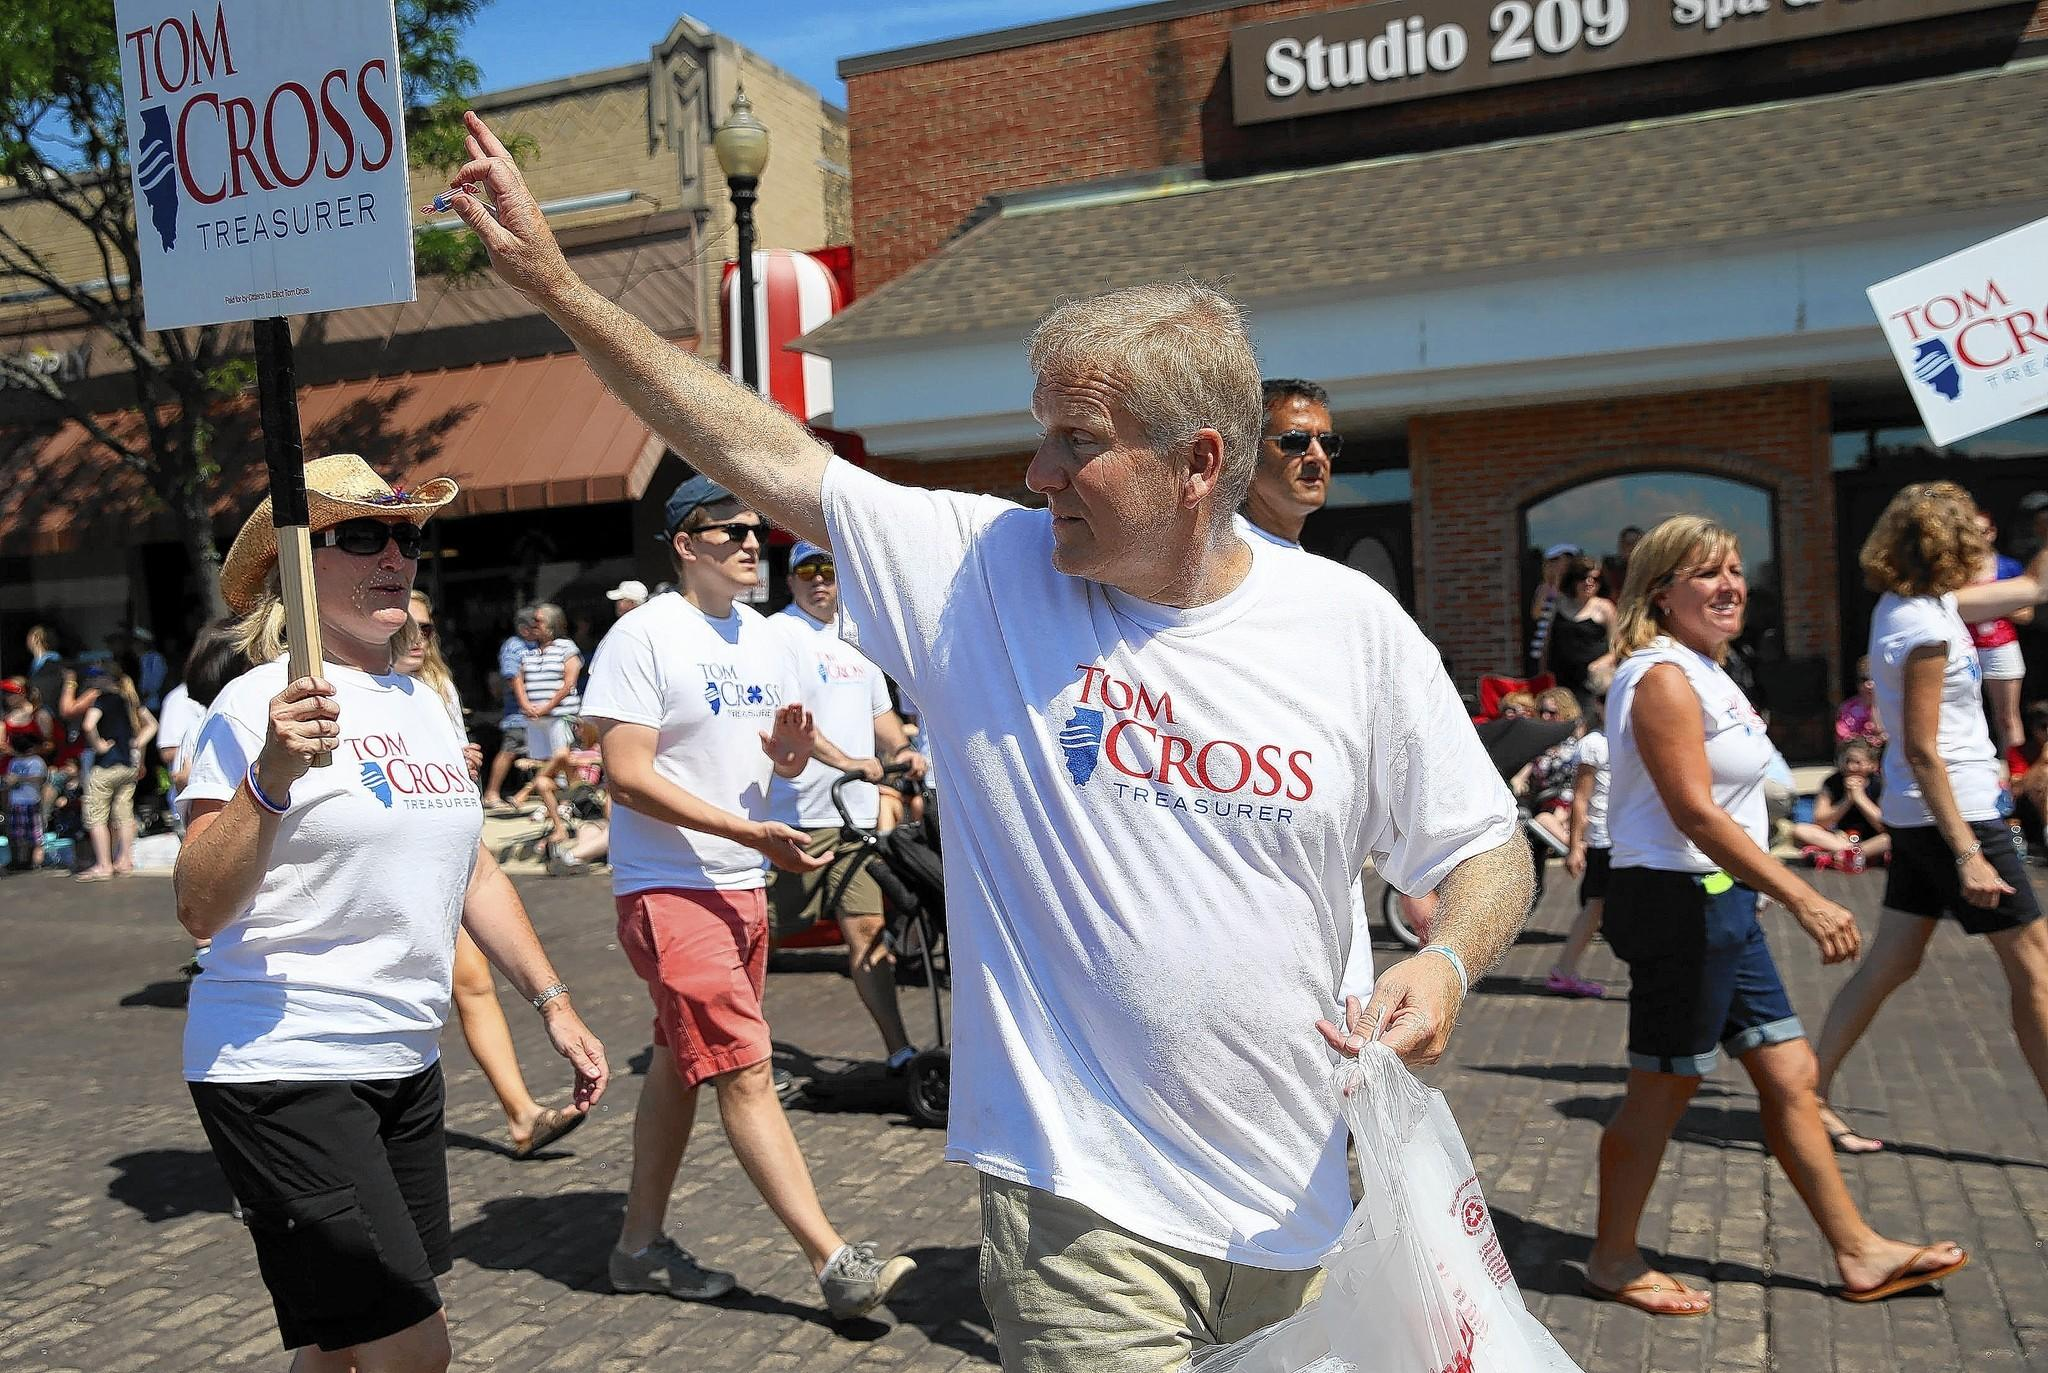 Rep. Tom Cross, R-Oswego, seen at Wheaton's Fourth of July parade, has backed legislation to change requirements so that the Illinois State Board of Education would issue licenses to two people who had sought Cross' help.